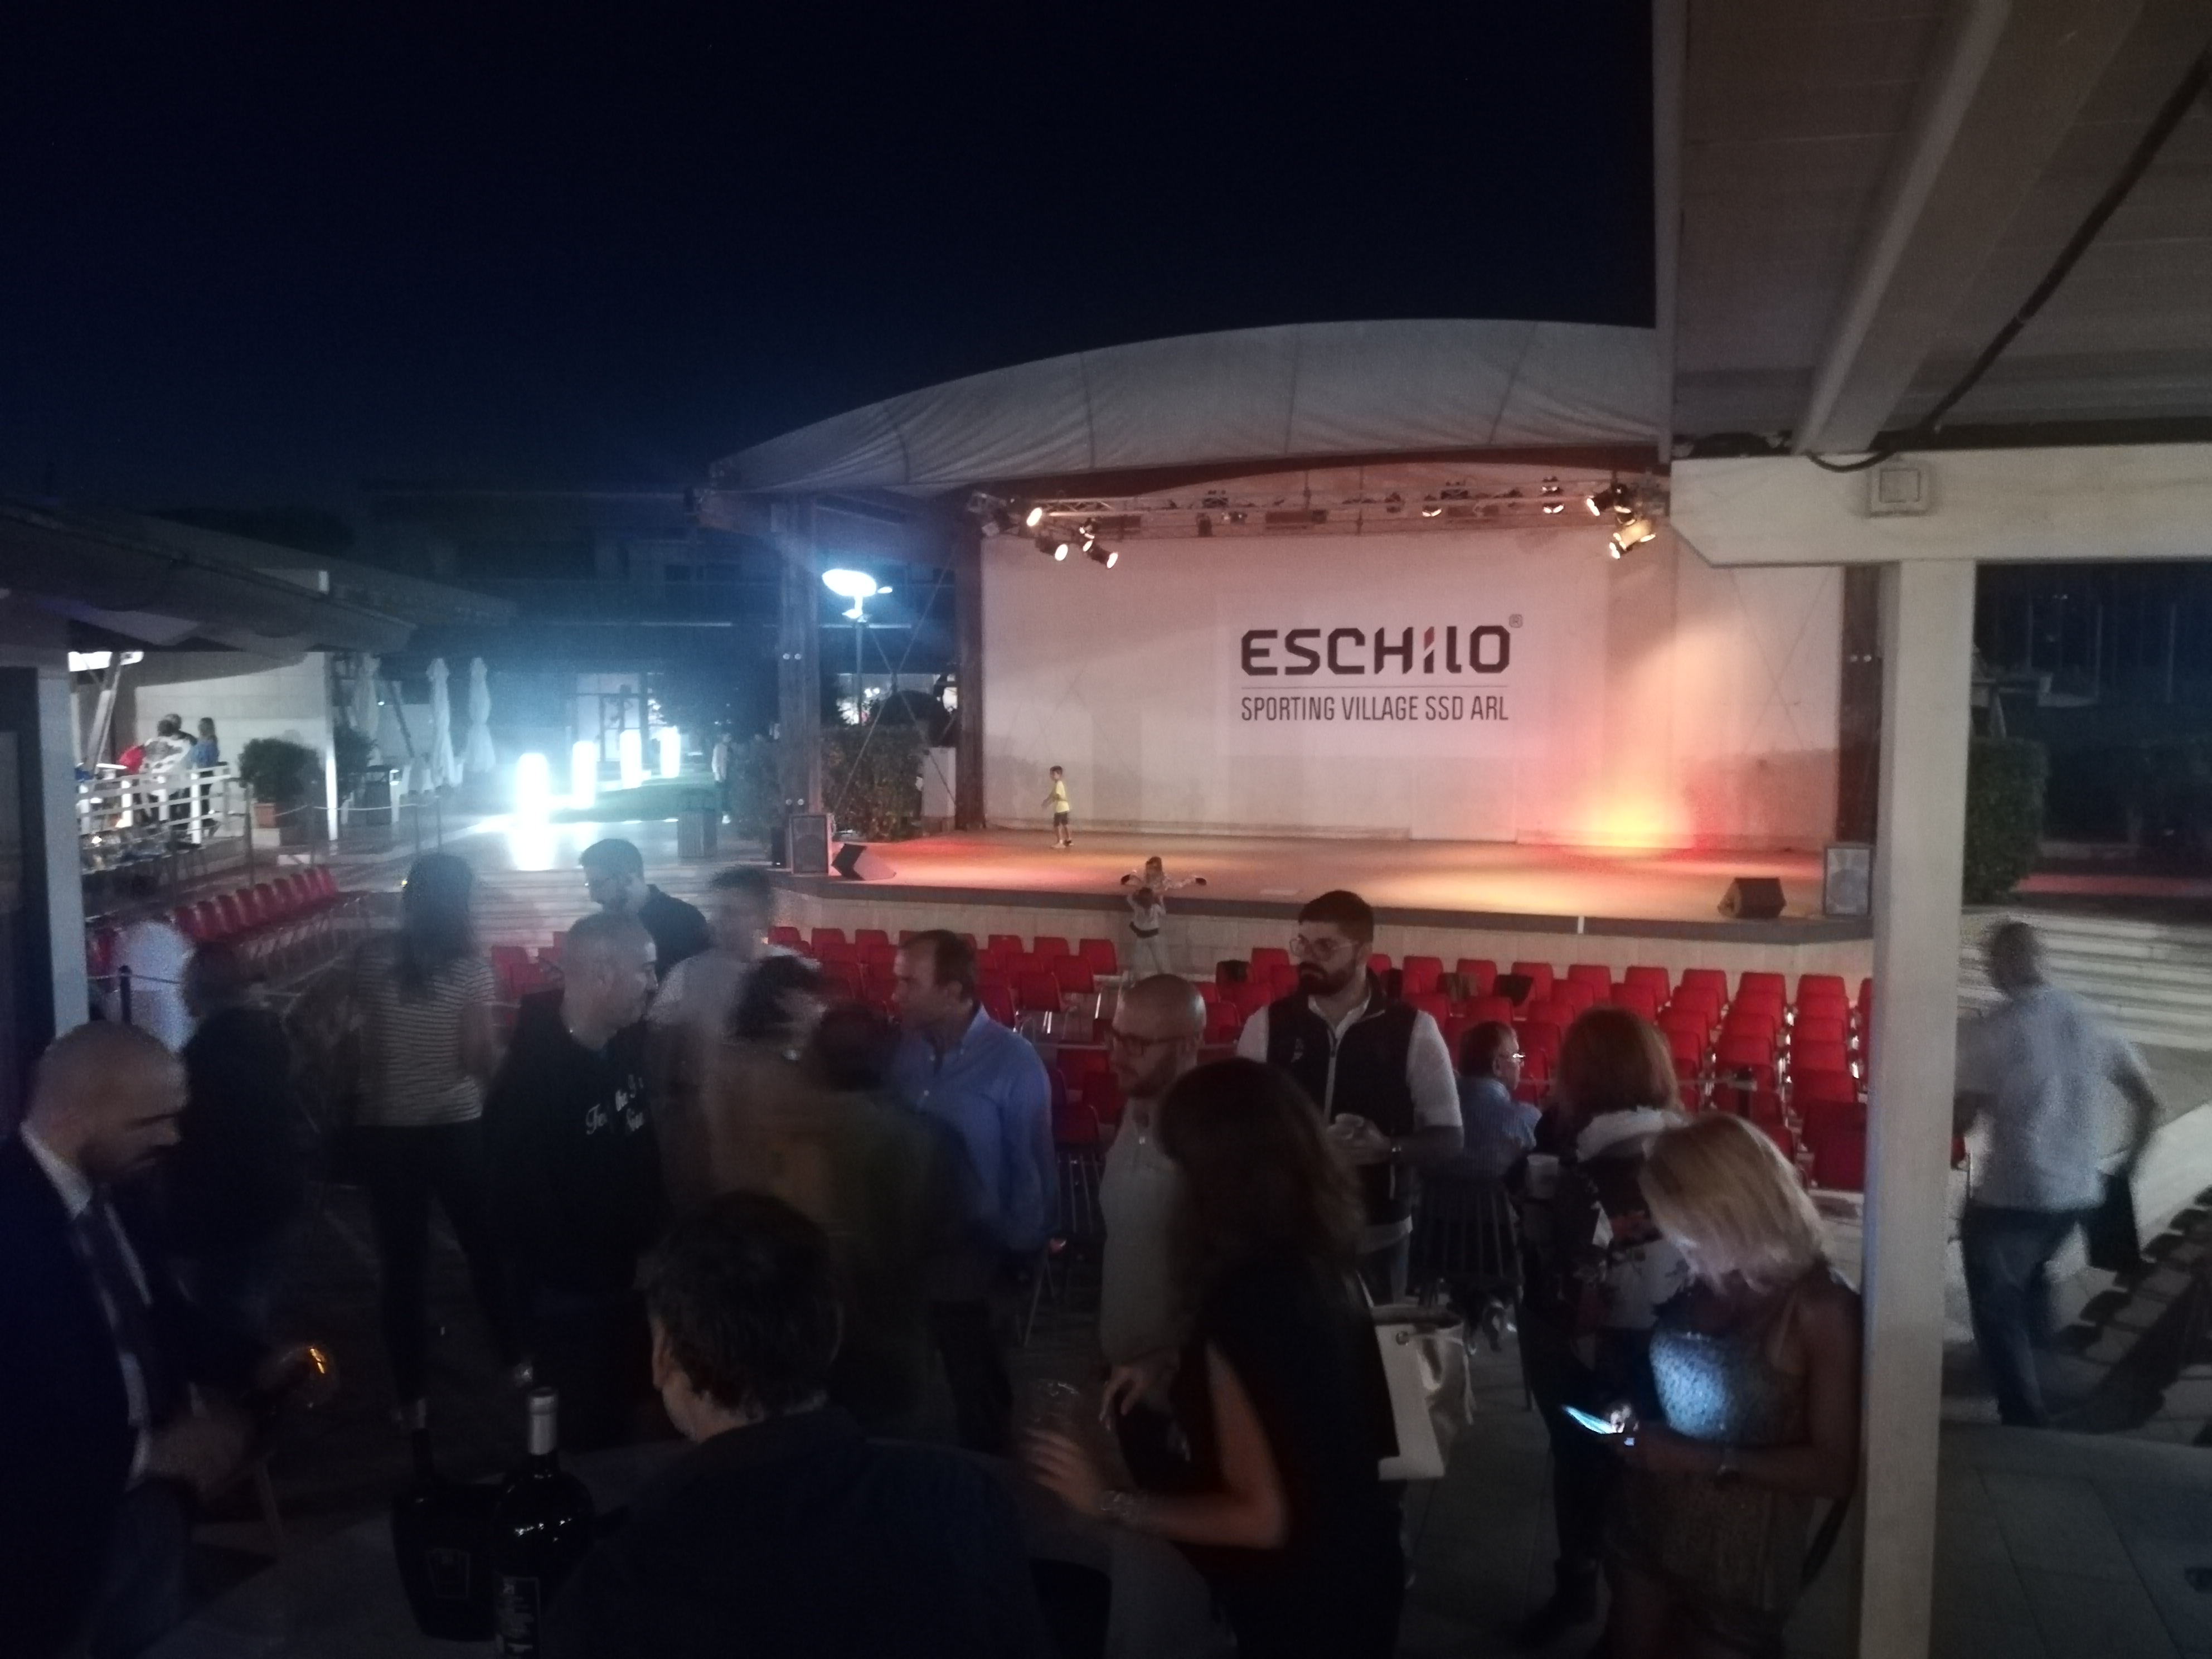 All' Eschilo Sporting Village all'Axa Marco Capretti presenta SCQR live